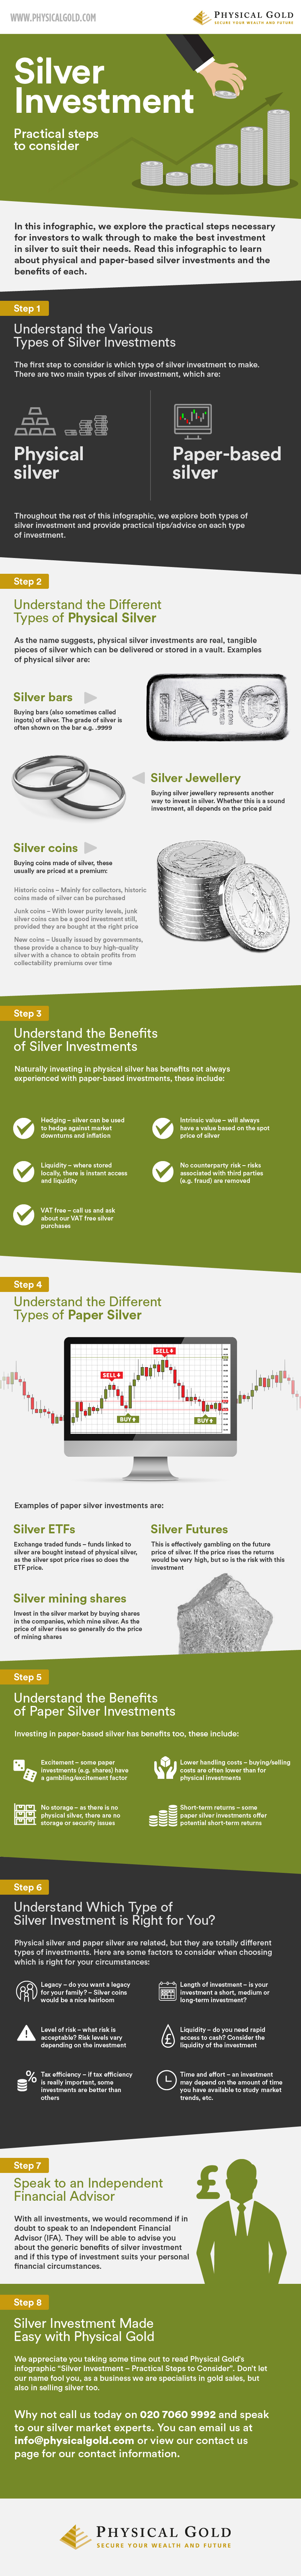 The types of physical silver – in a new infographic from Physical Gold